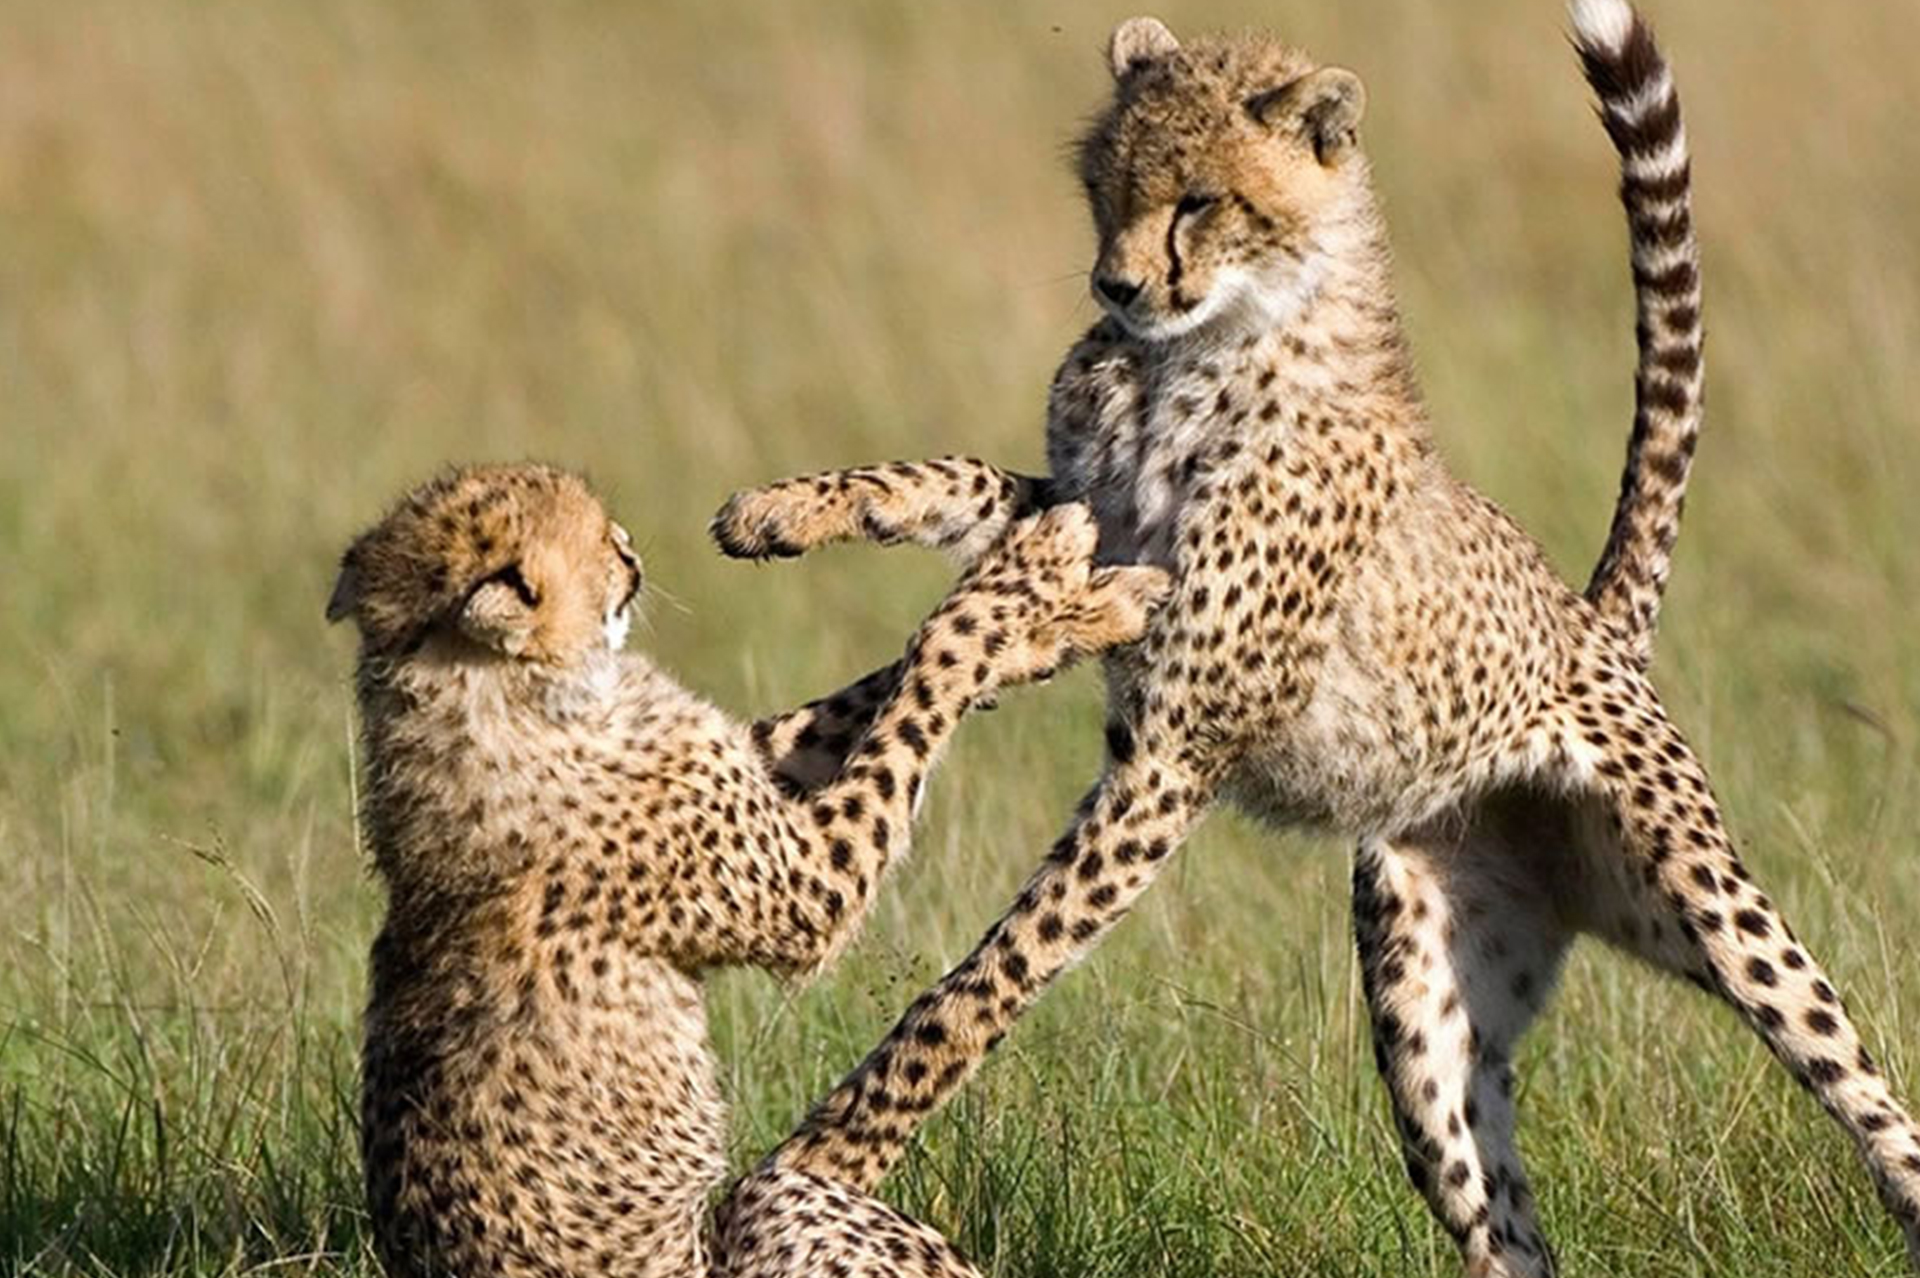 Diani_Travel_Center_4_Days_Hakuna_Matata_Special_Safari_in_Taita_Taveta_